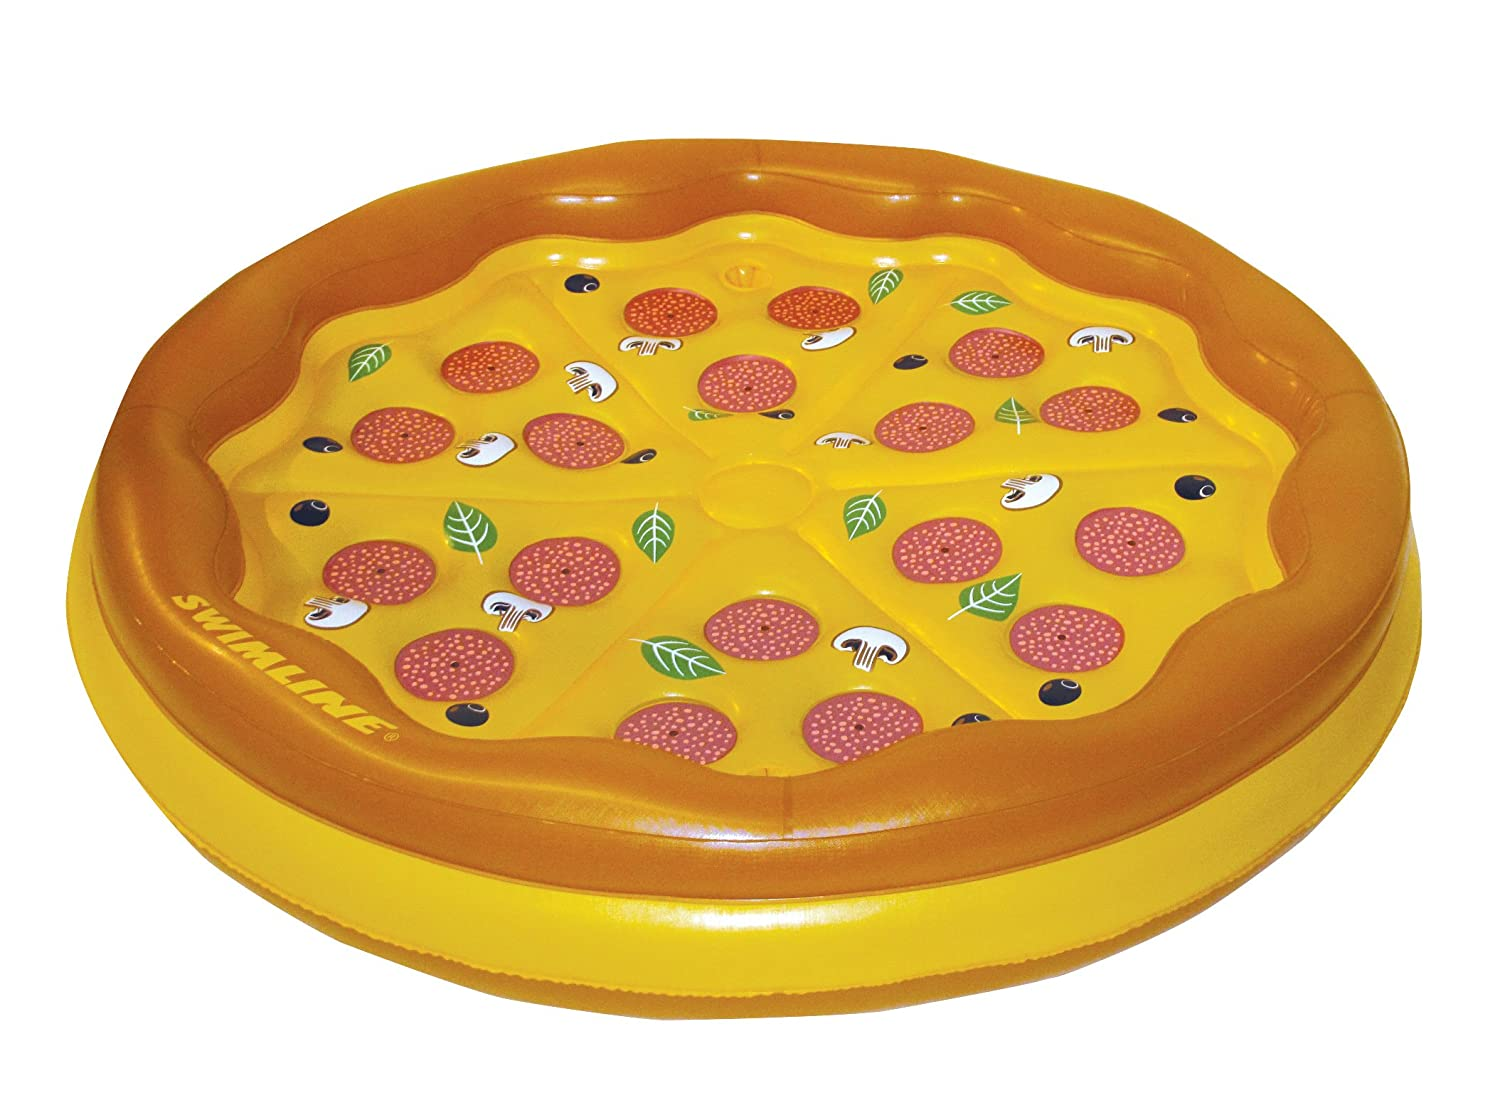 Swimline Personal Pizza Island Swimming Pool Float by Swimline